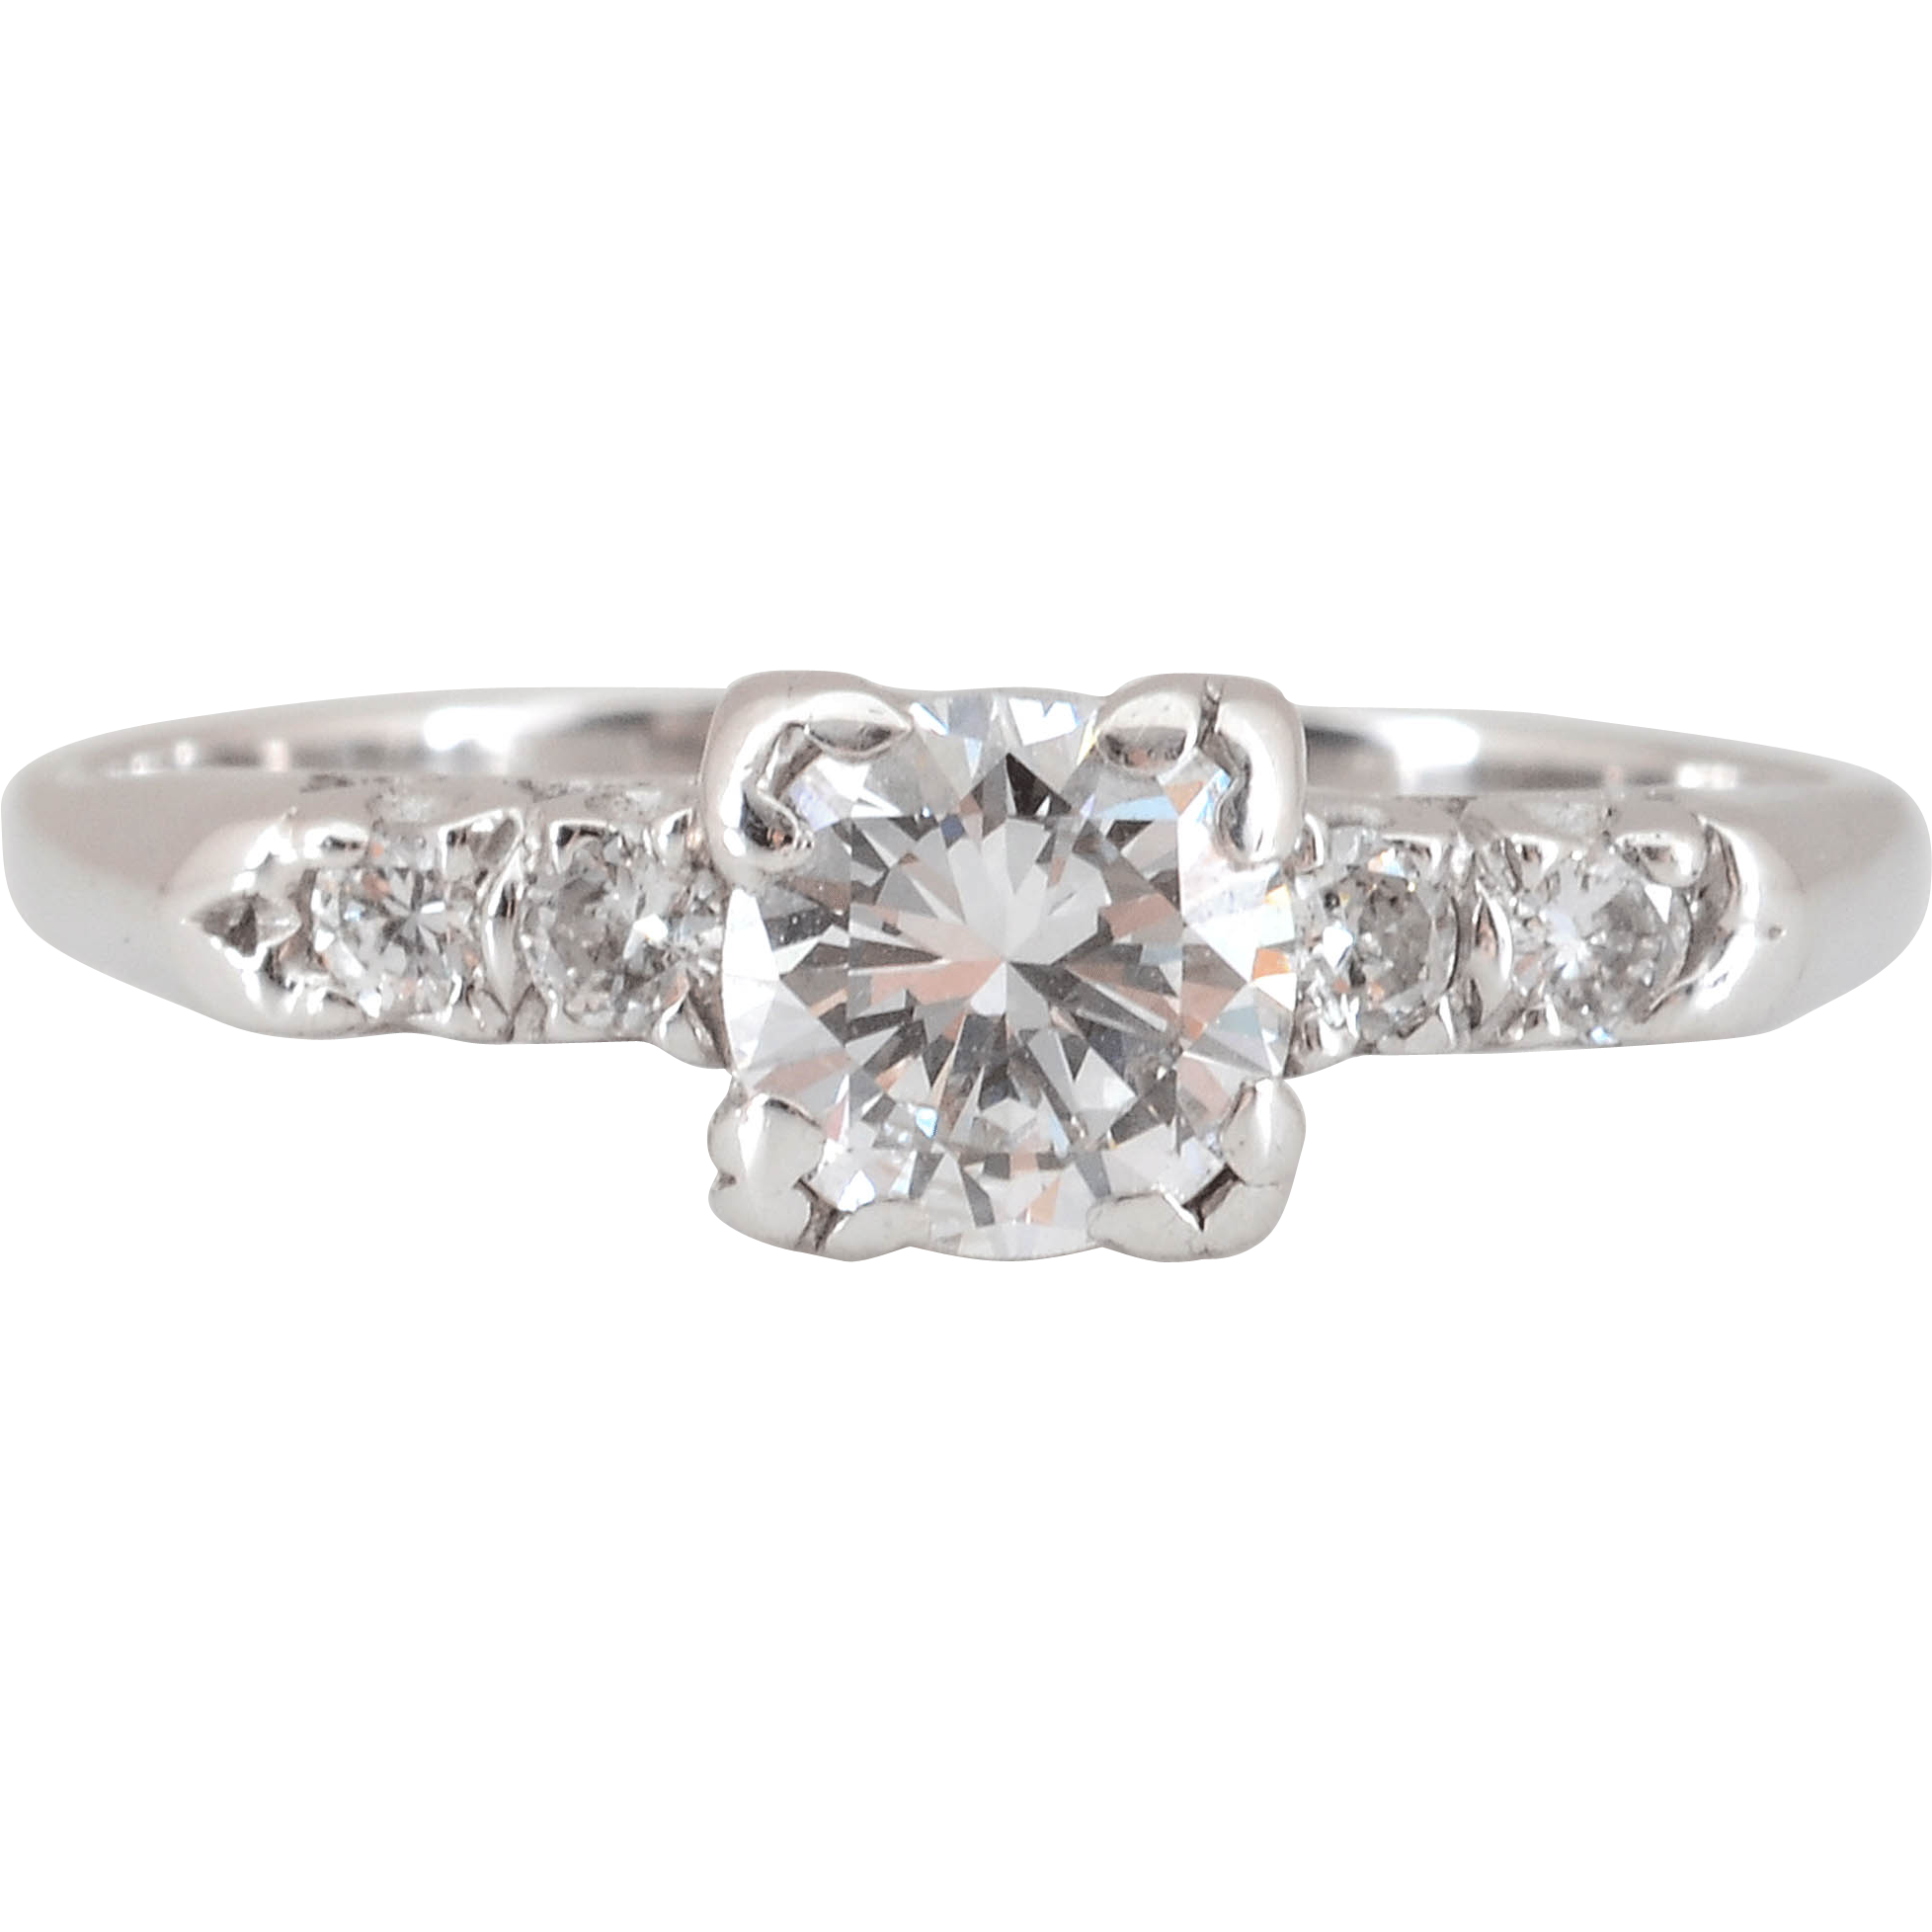 0.75 Carat Center Diamond Ring